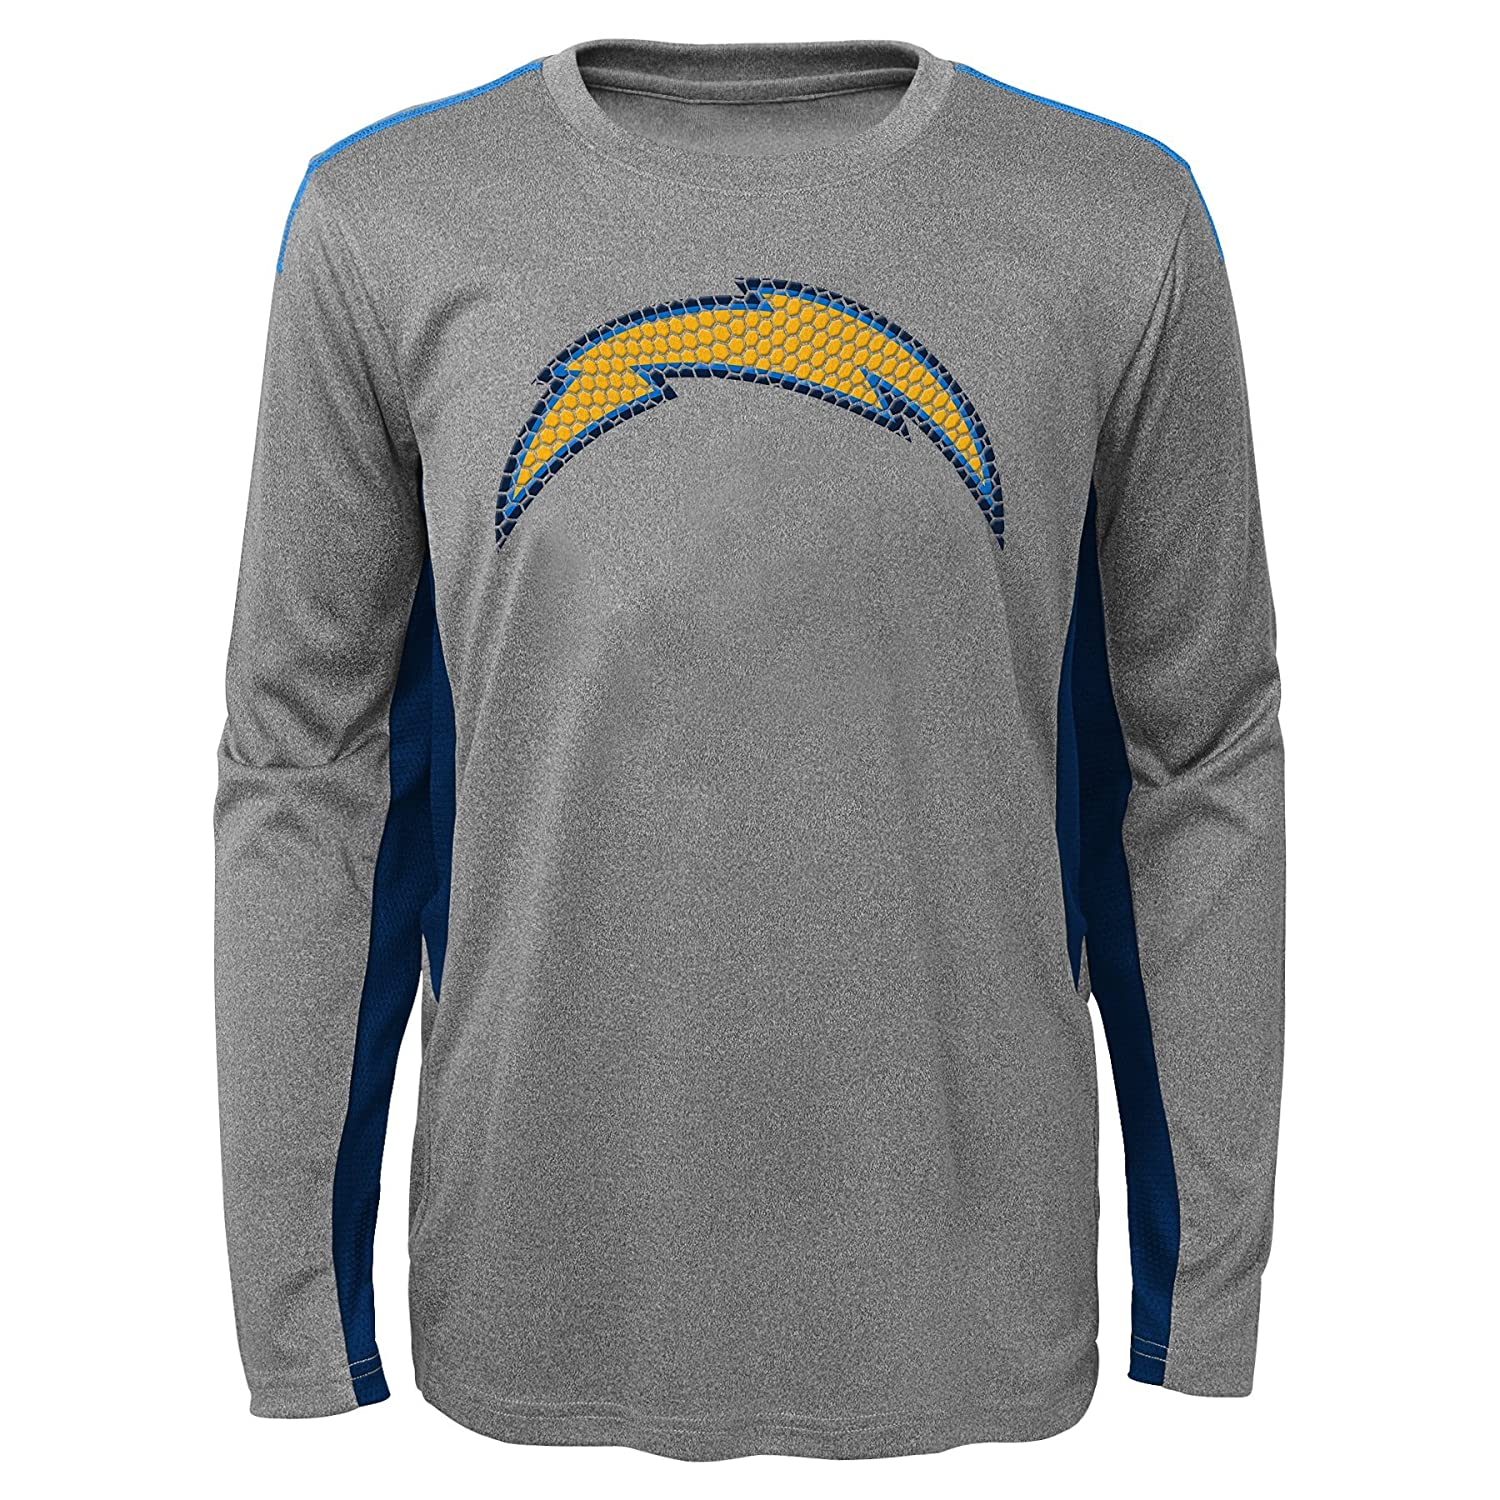 10-12 Outerstuff NFL Youth Boys Mainframe Long Sleeve Performance Tee-Light Charcoal-M Los Angeles Chargers